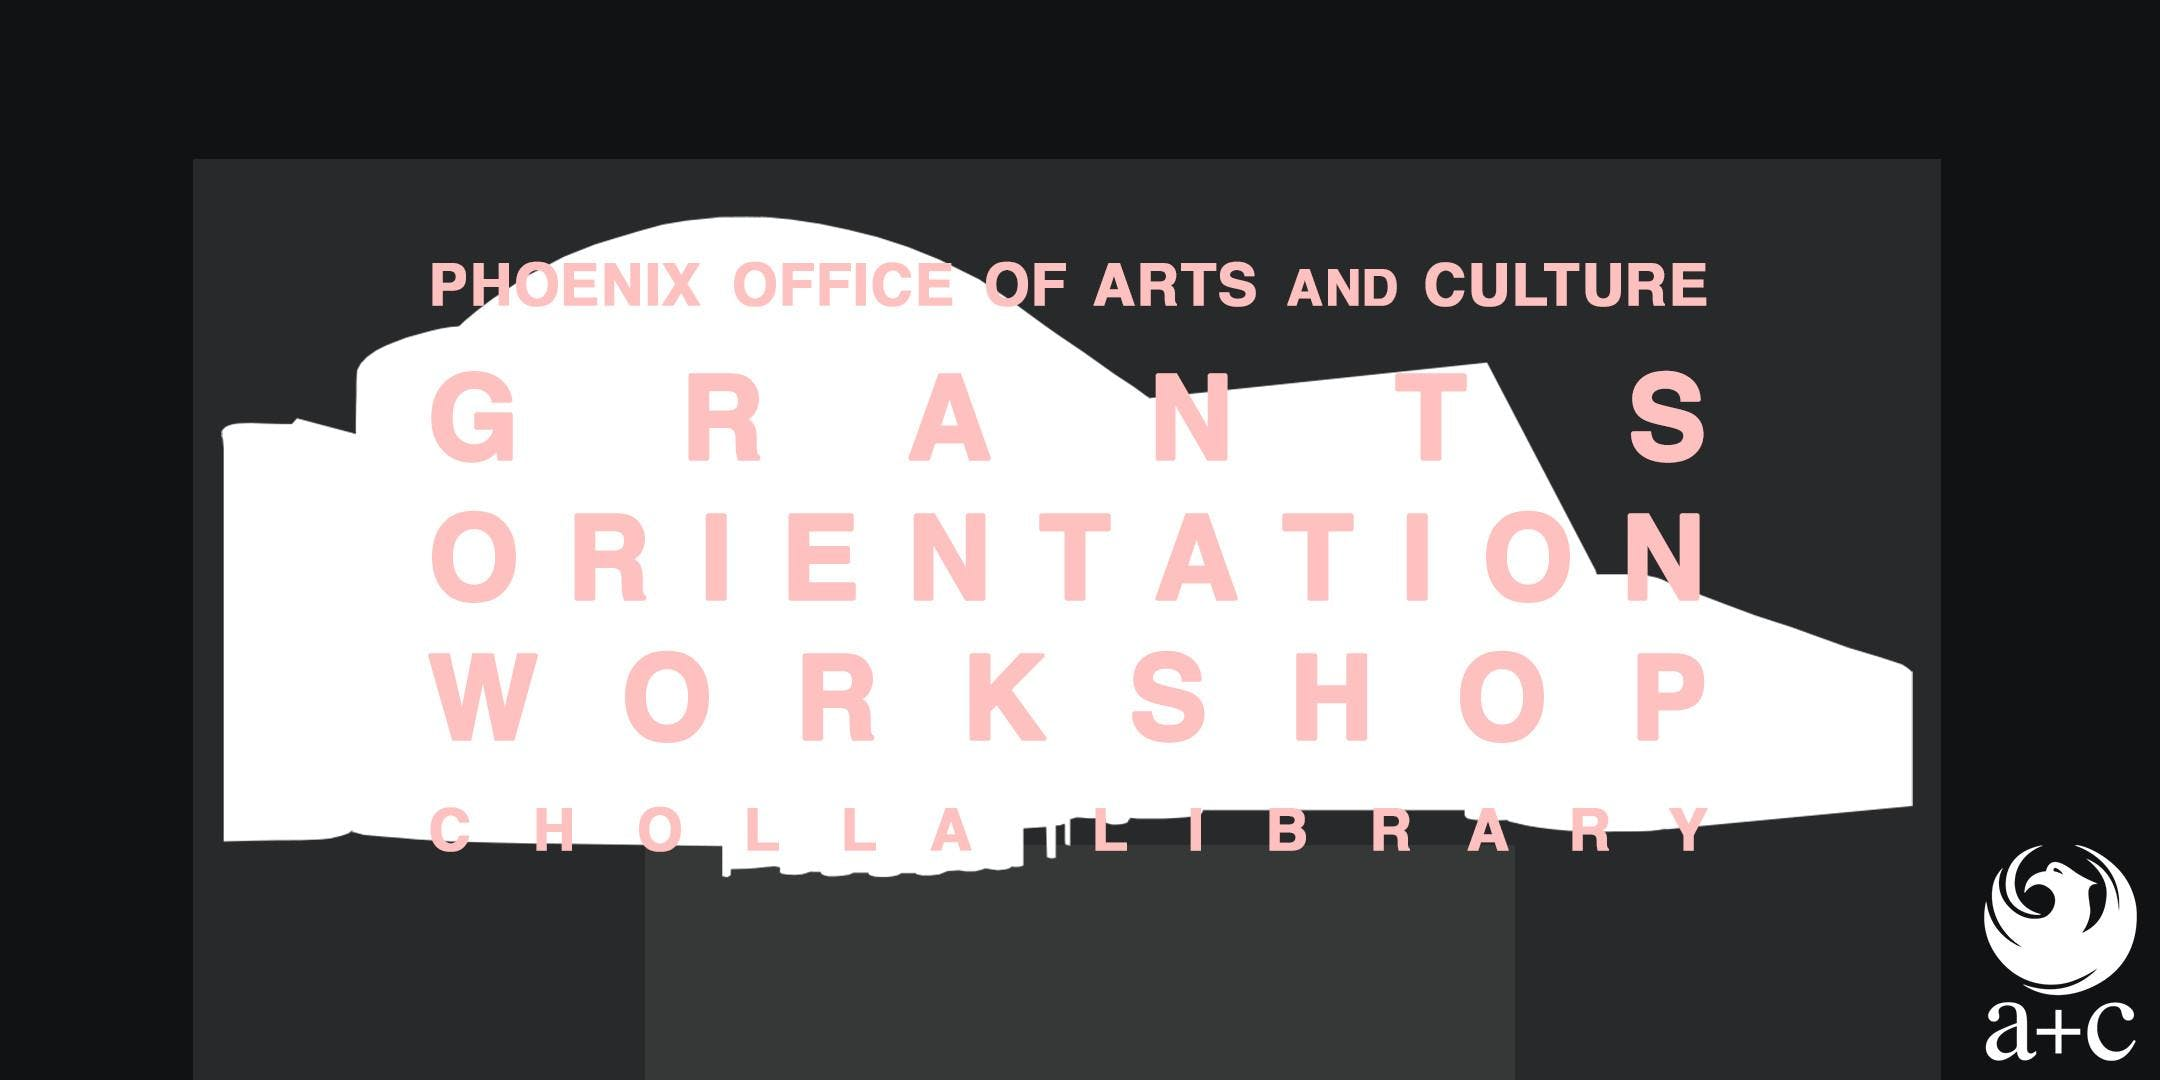 Grant Orientation Workshop at Cholla Library